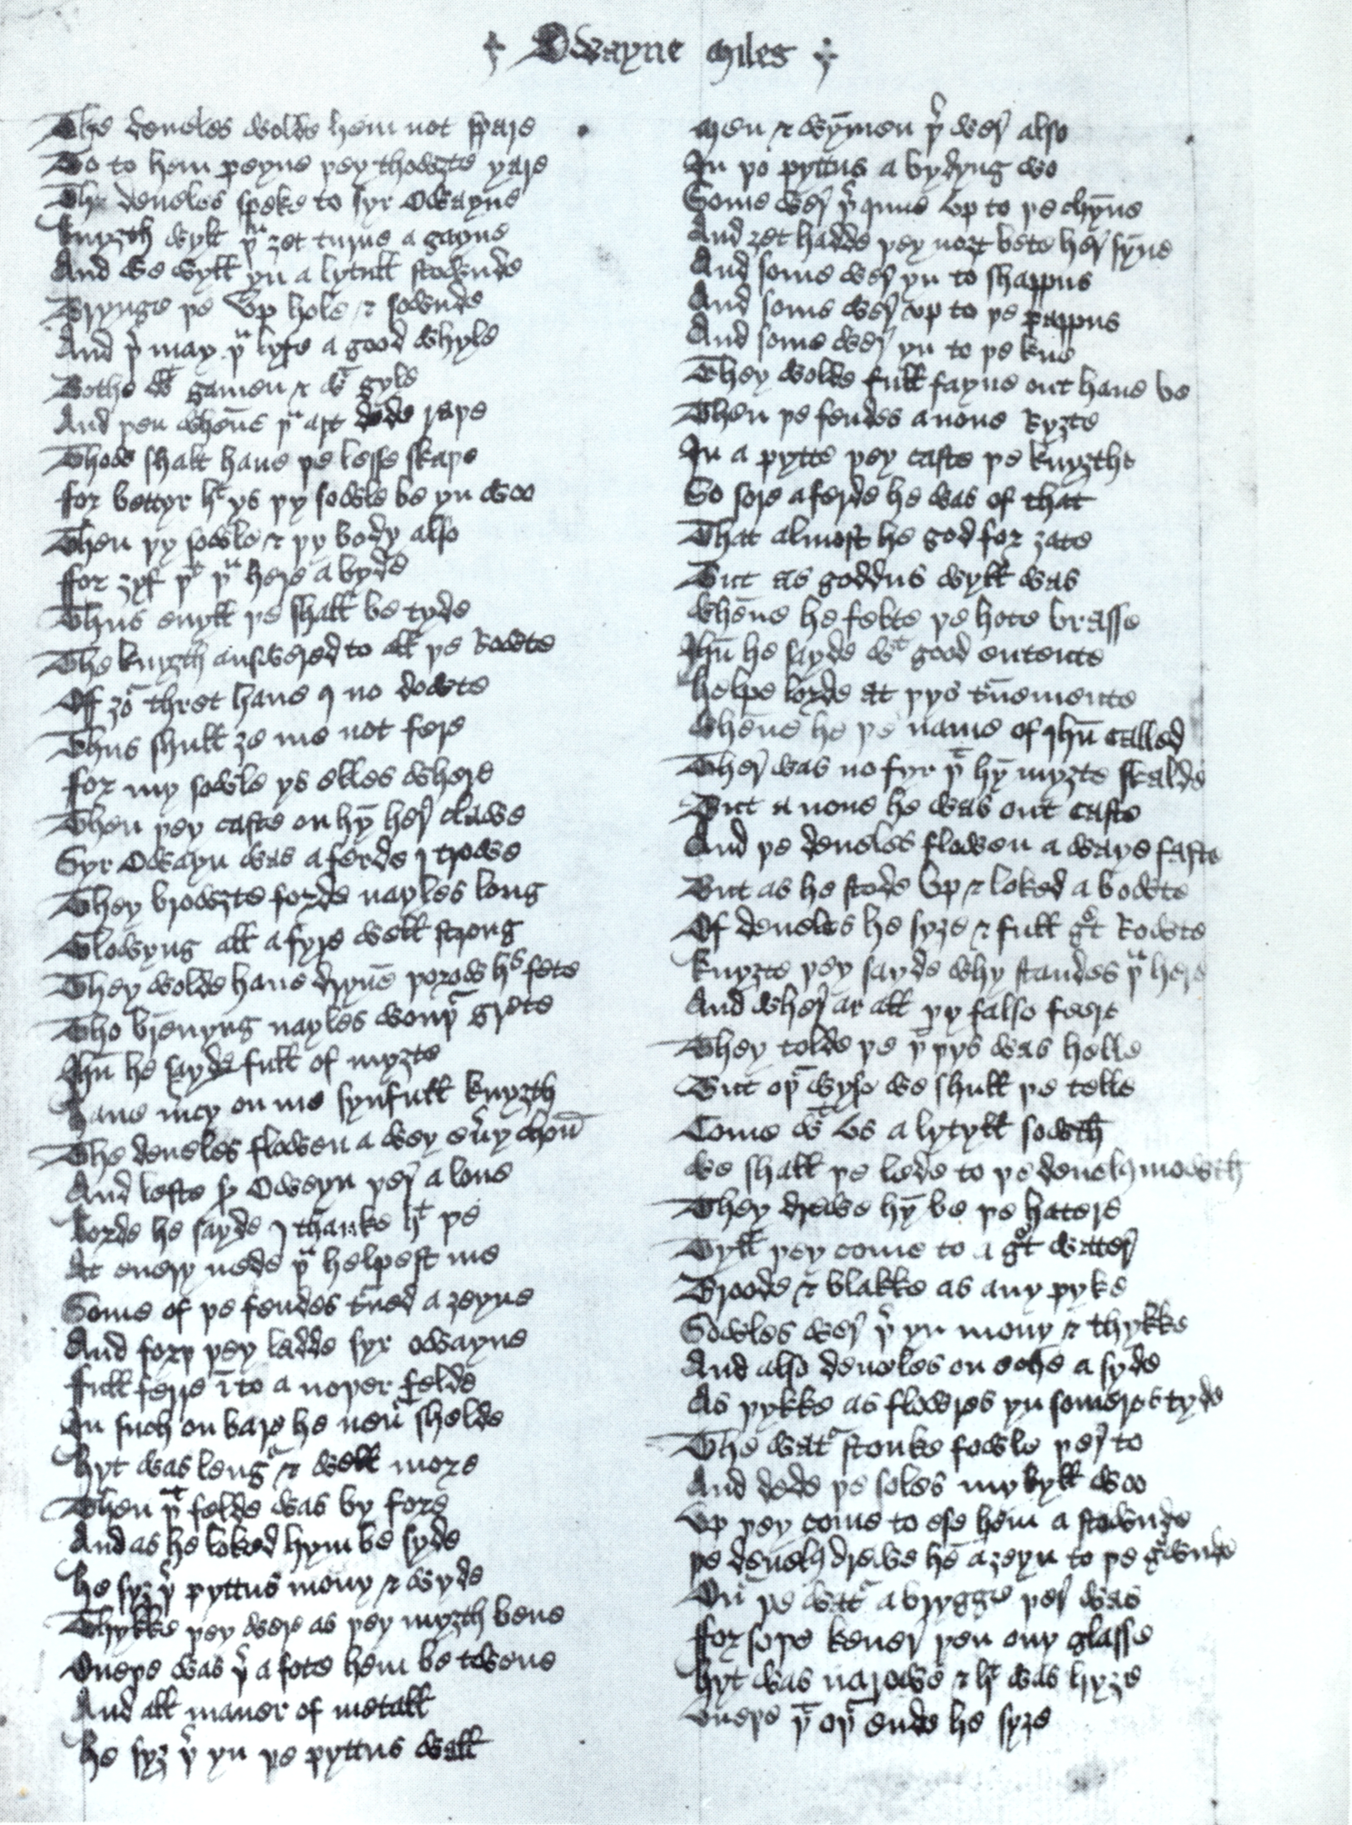 A page from a fifteenth-century Middle English manuscript.